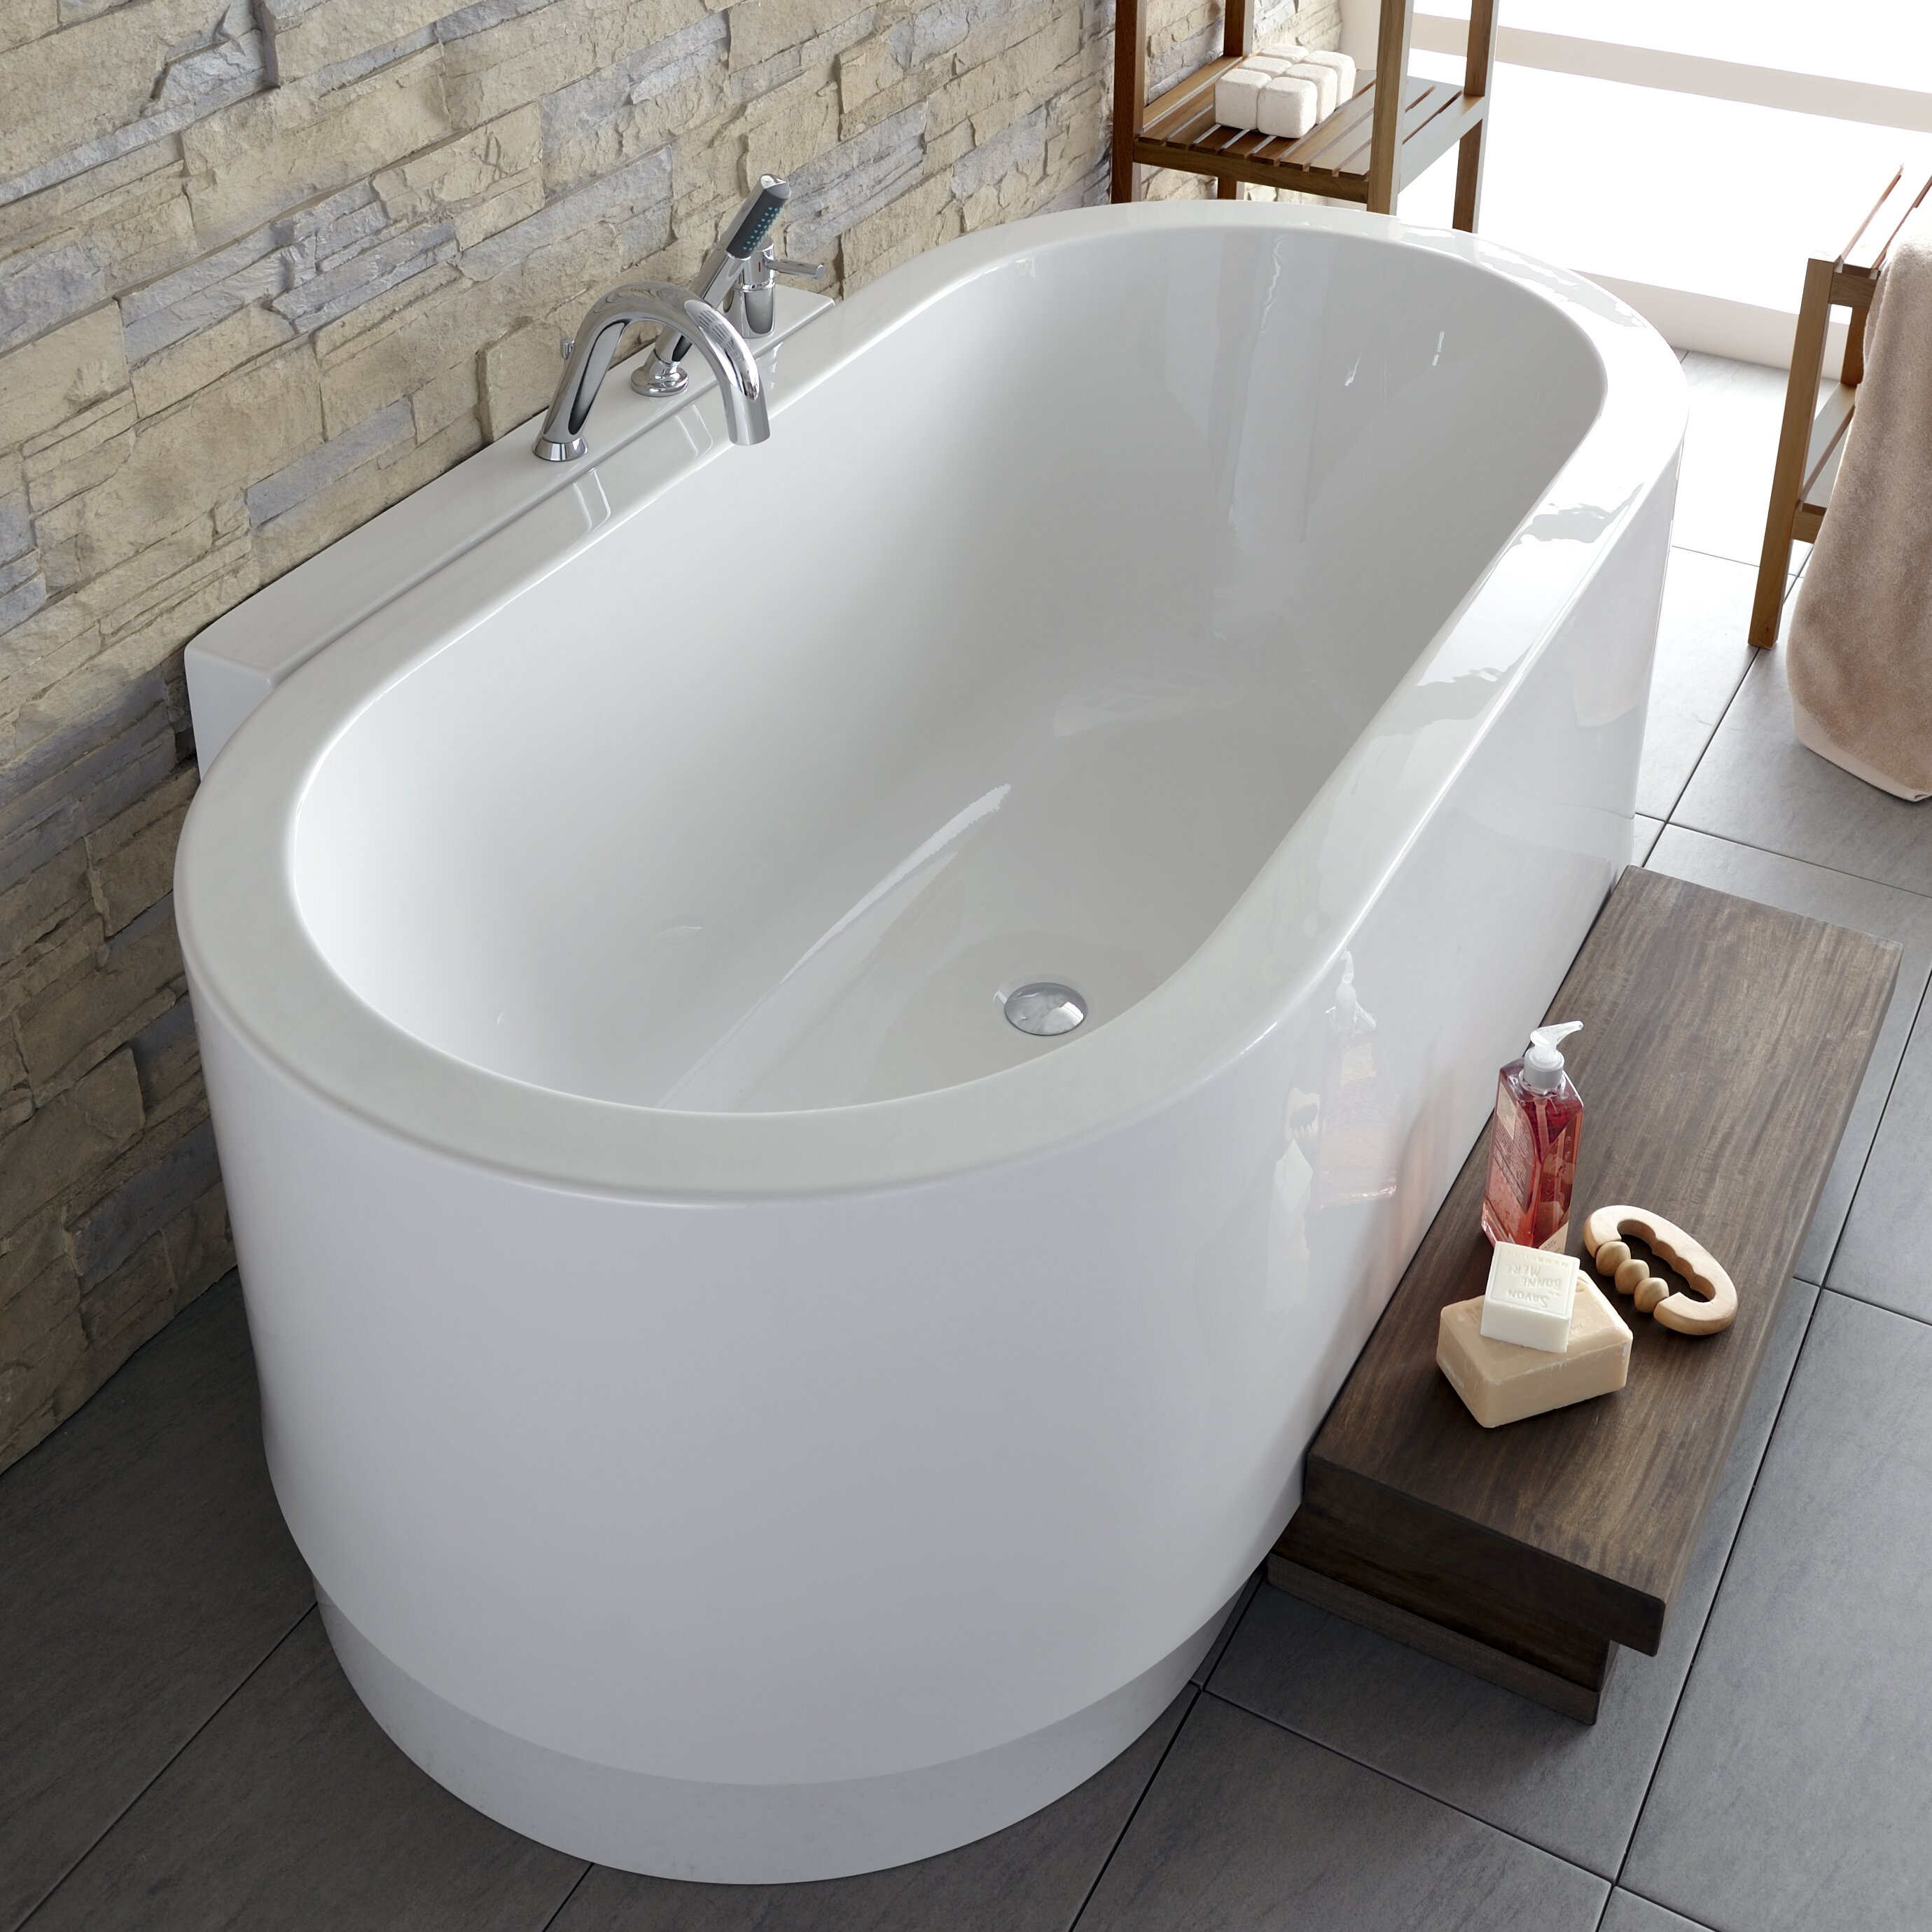 Charming Cleaning Bathroom With Bleach And Water Tiny Standard Bathroom Dimensions Uk Clean Renovation Ideas For A Small Bathroom Tiny Bathroom Ideas Photos Youthful Clean Bathroom Sink Drain Trap BrownBest Hotel Room Bathrooms In Las Vegas 1400 Freestanding Bathtub   Rukinet